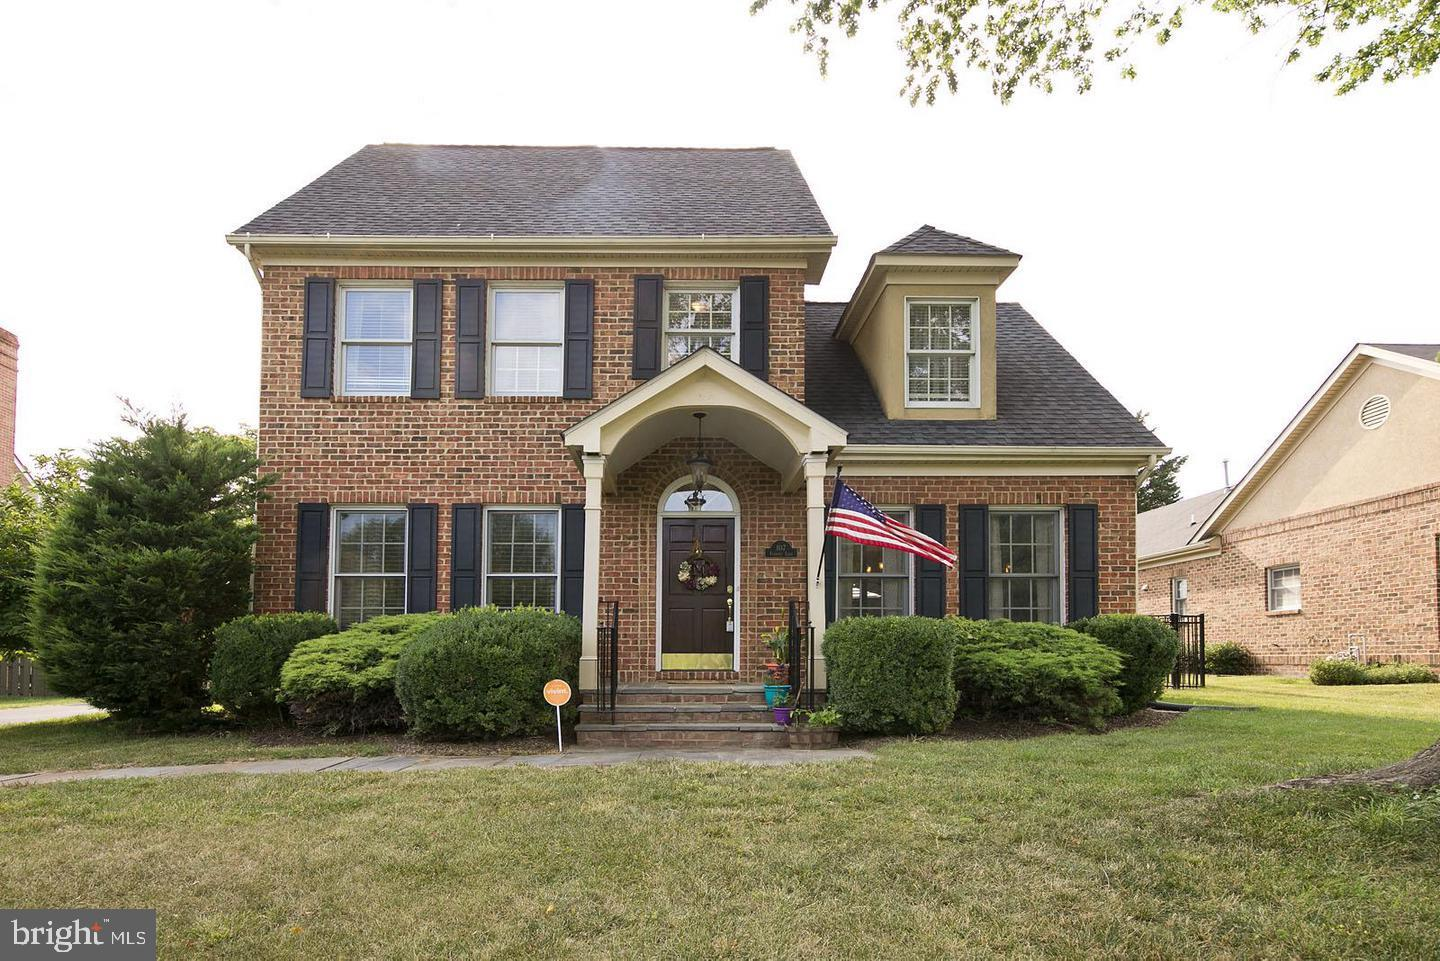 Gorgeous all Brick home on the east side! This stately home features FIRST floor Master bedroom, wit